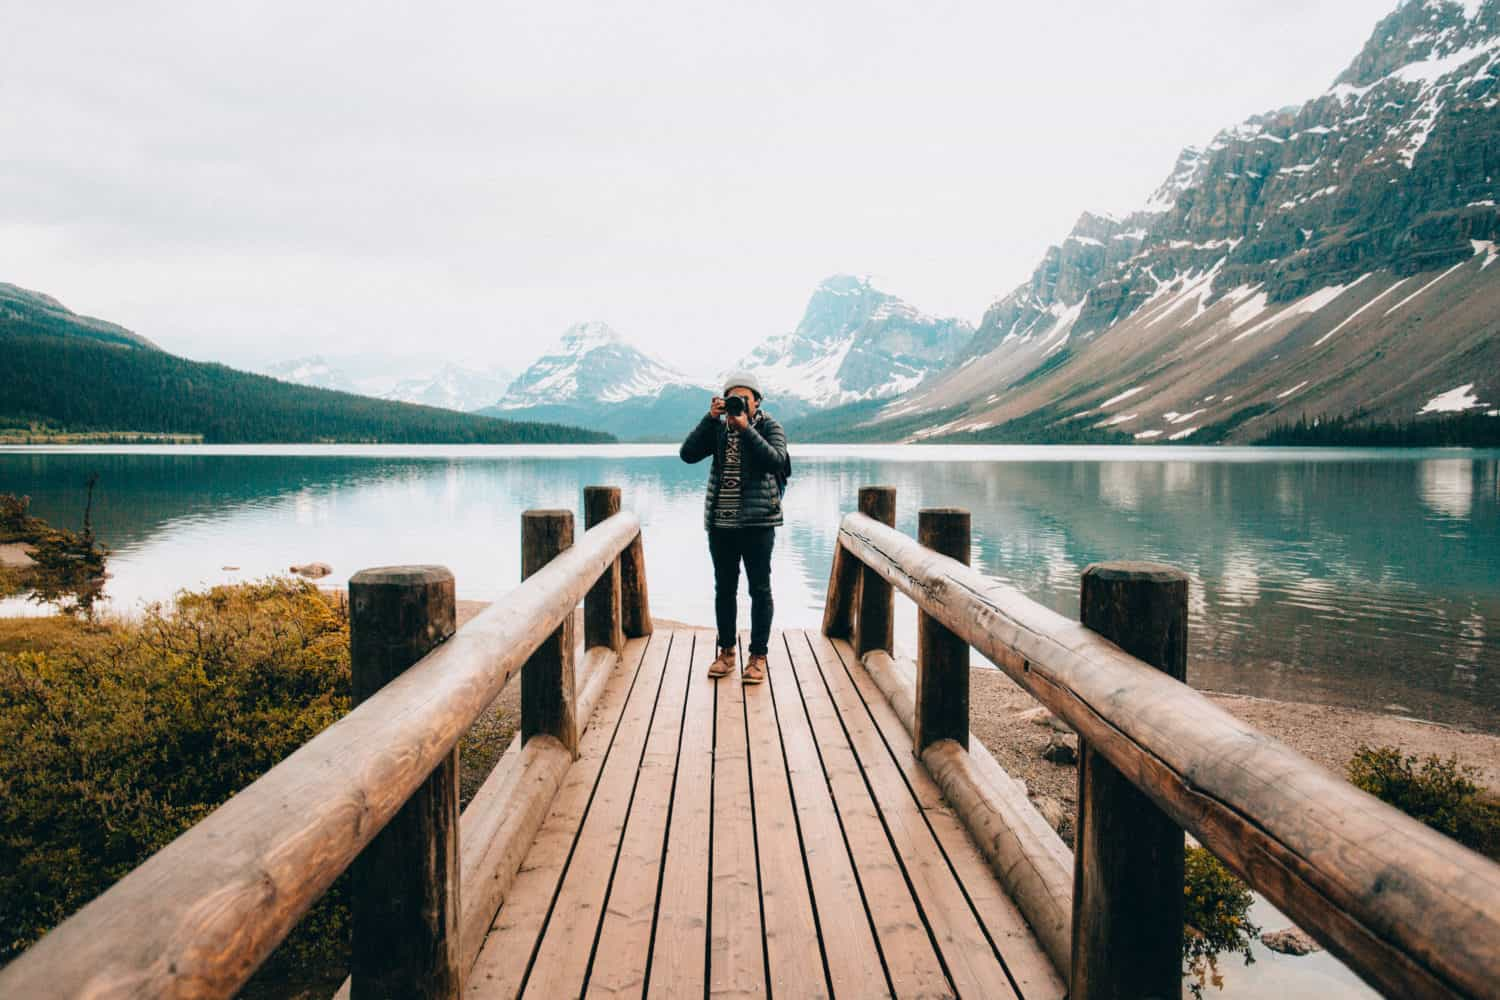 Berty Mandagie taking photos at Bow Lake, Banff National Park - TheMandagies.com